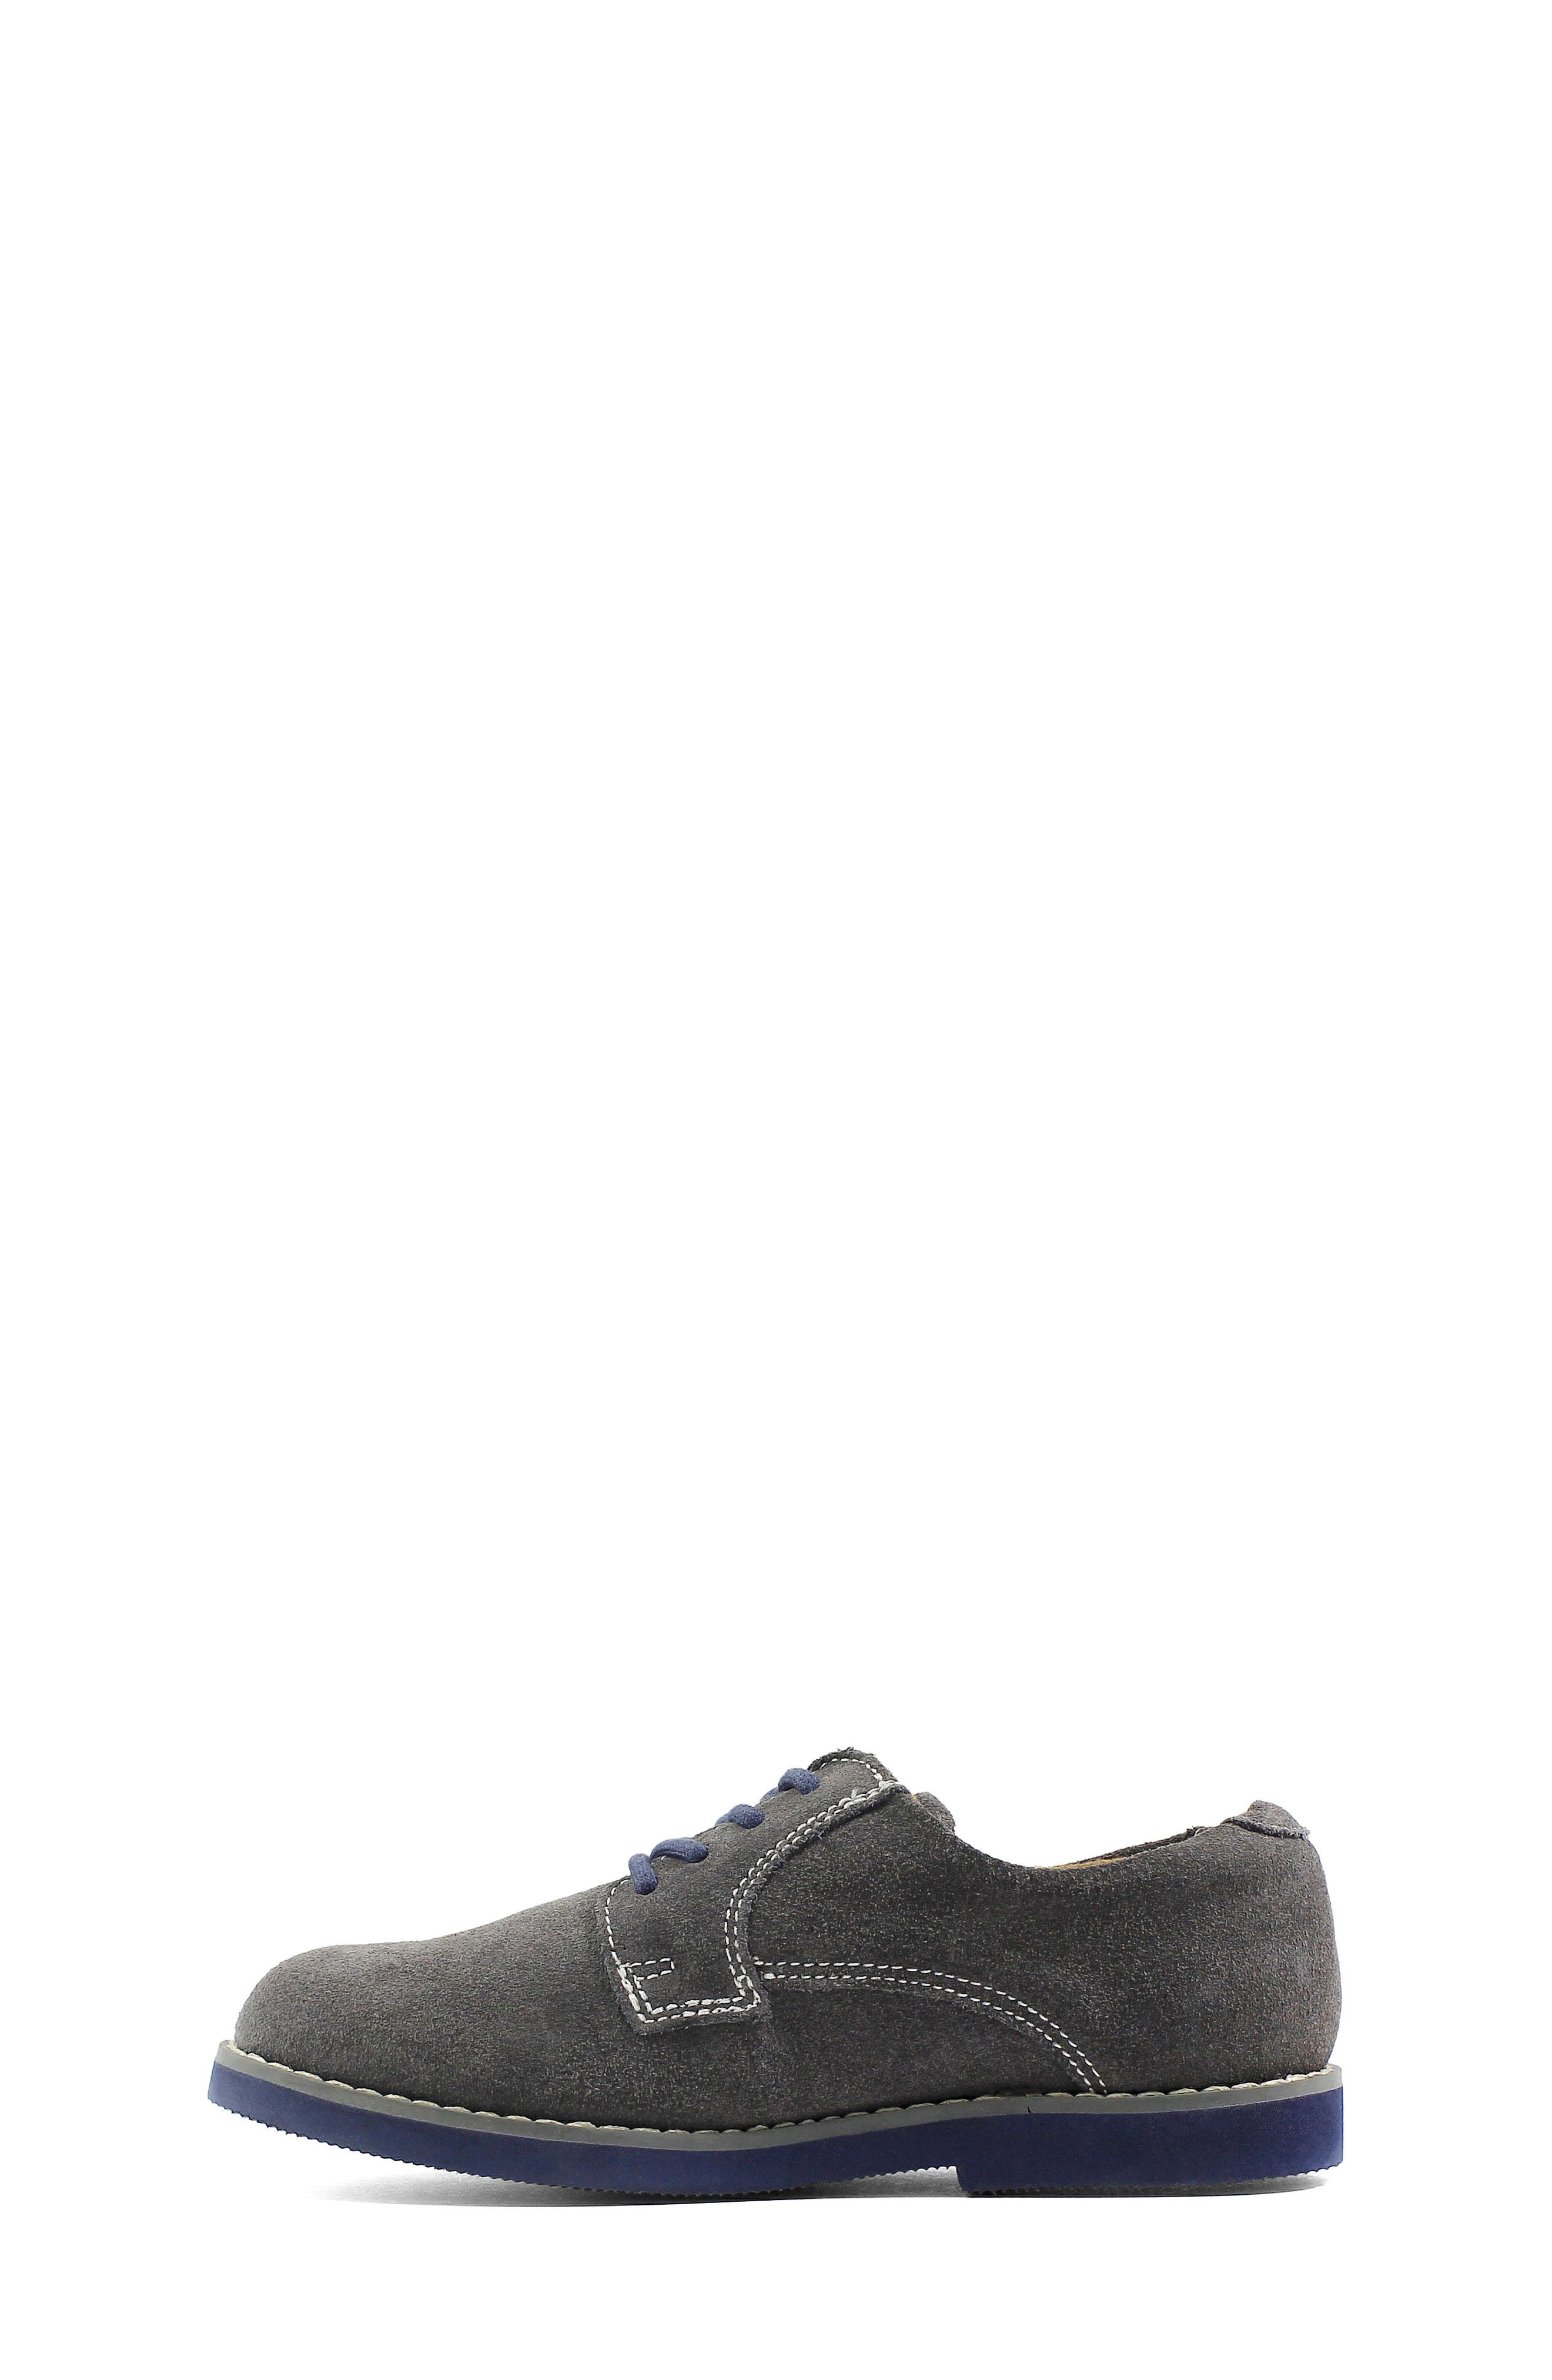 Kearny Two Tone Oxford,                             Alternate thumbnail 7, color,                             GREY/ NAVY SOLE